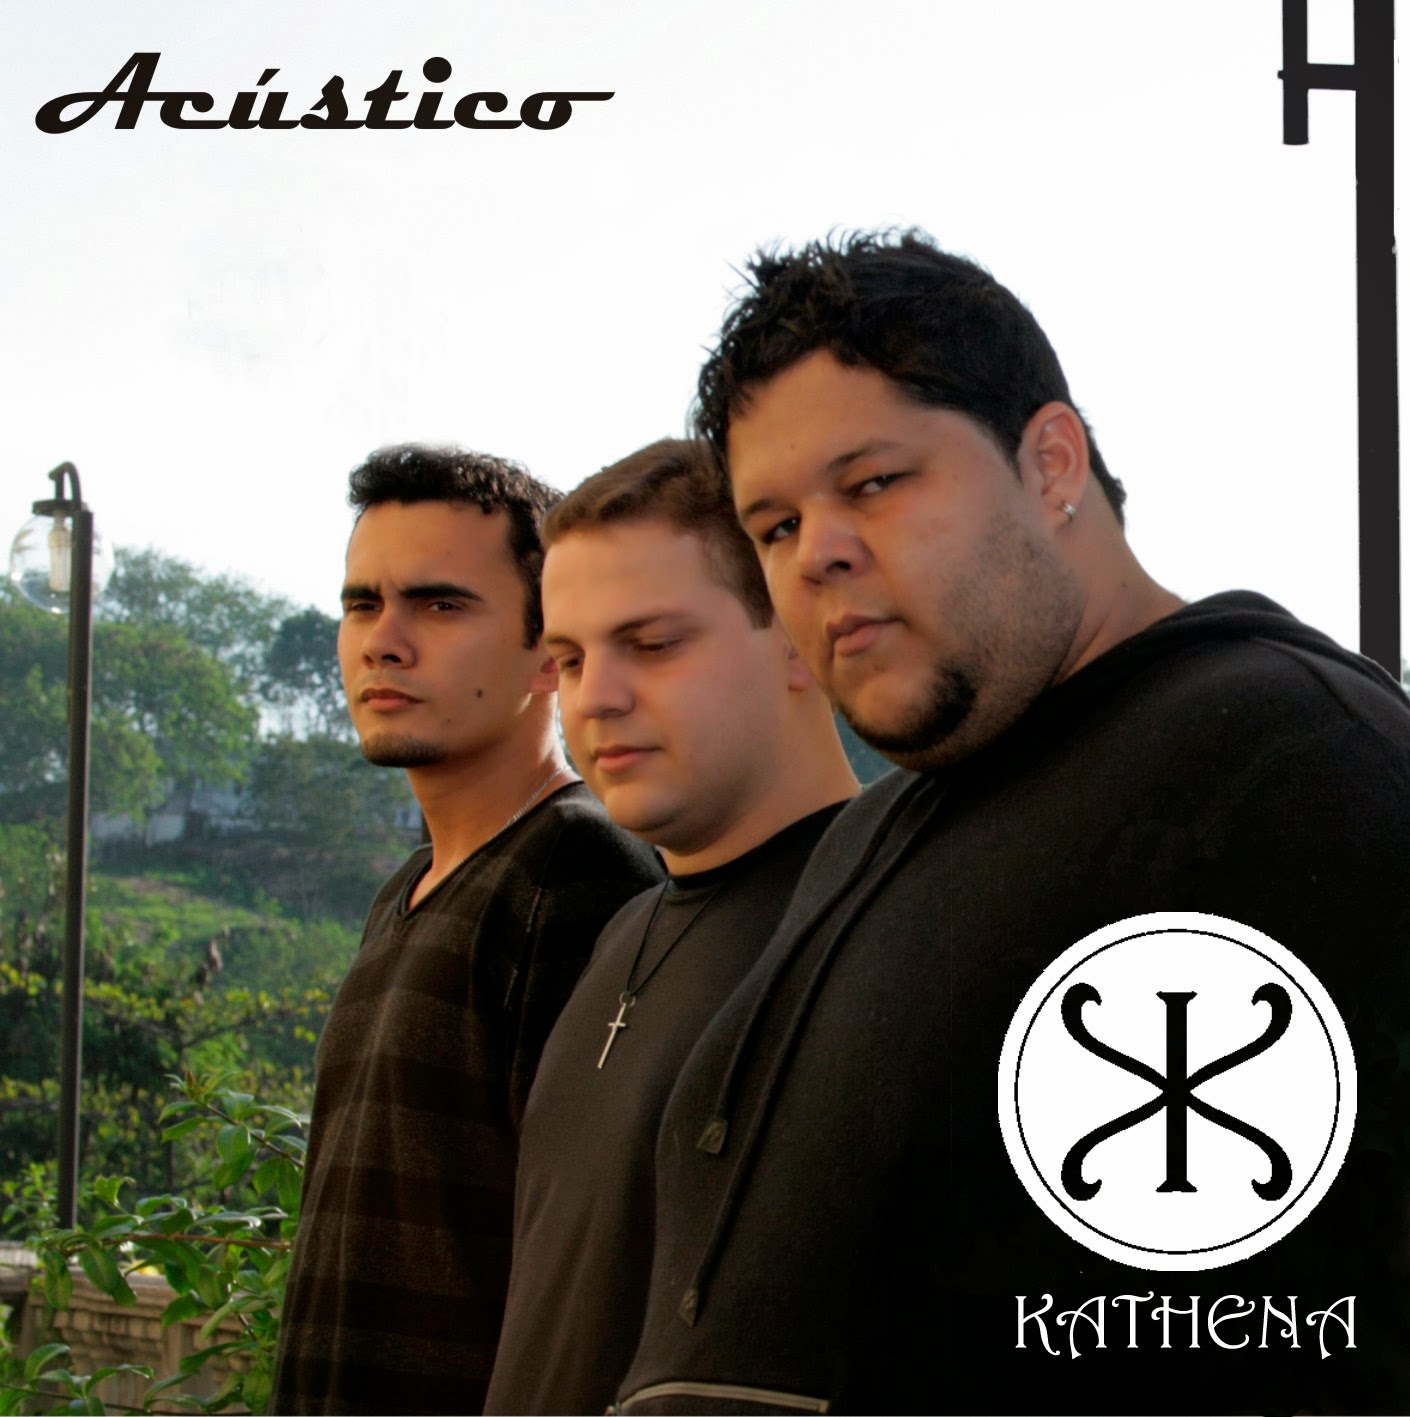 CD Kathena Acústico